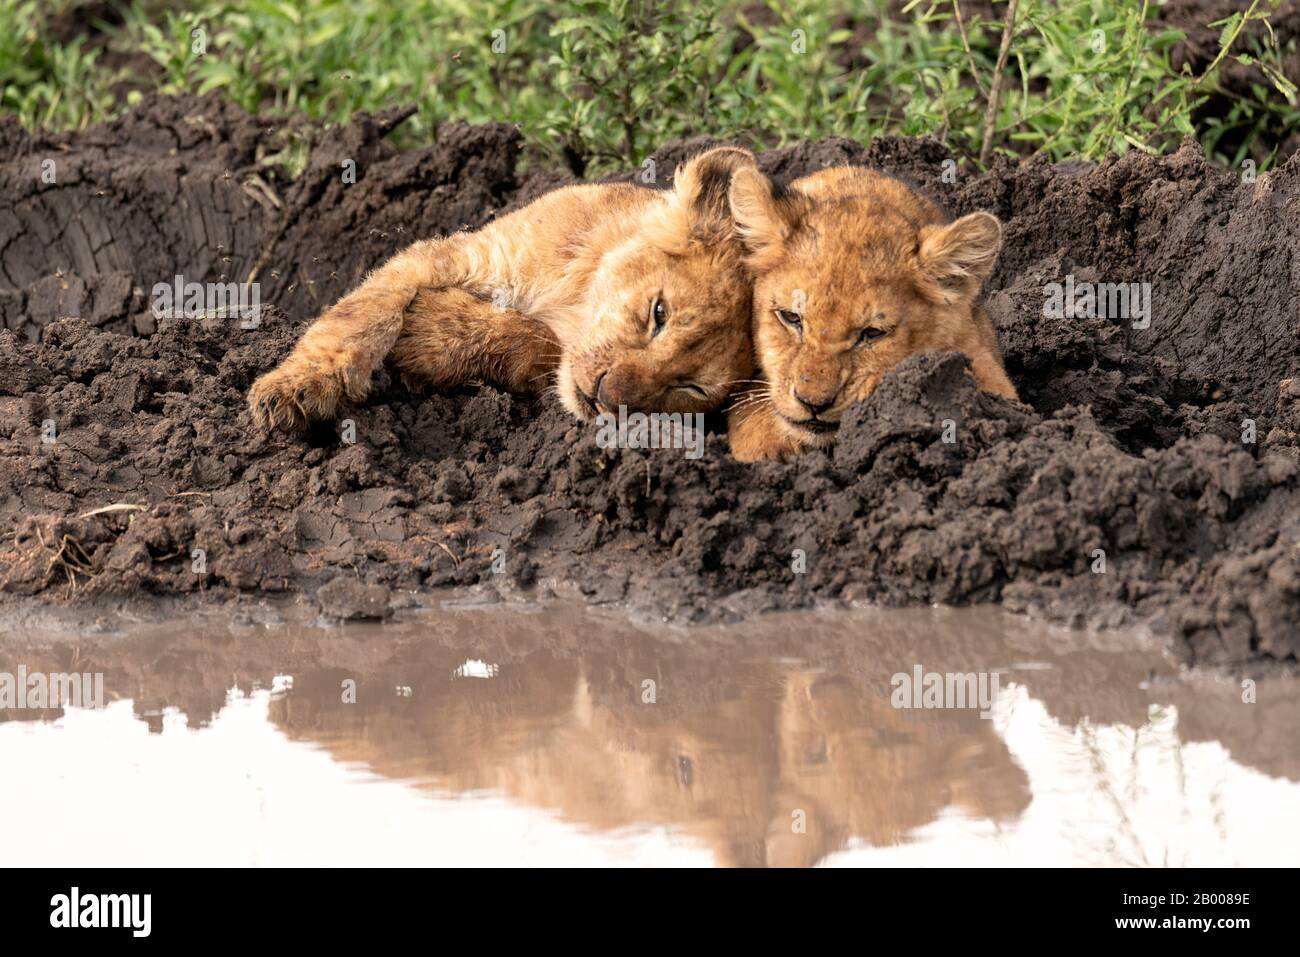 Adorable Lion cubs cuddling with reflection in the puddle Stock Photo